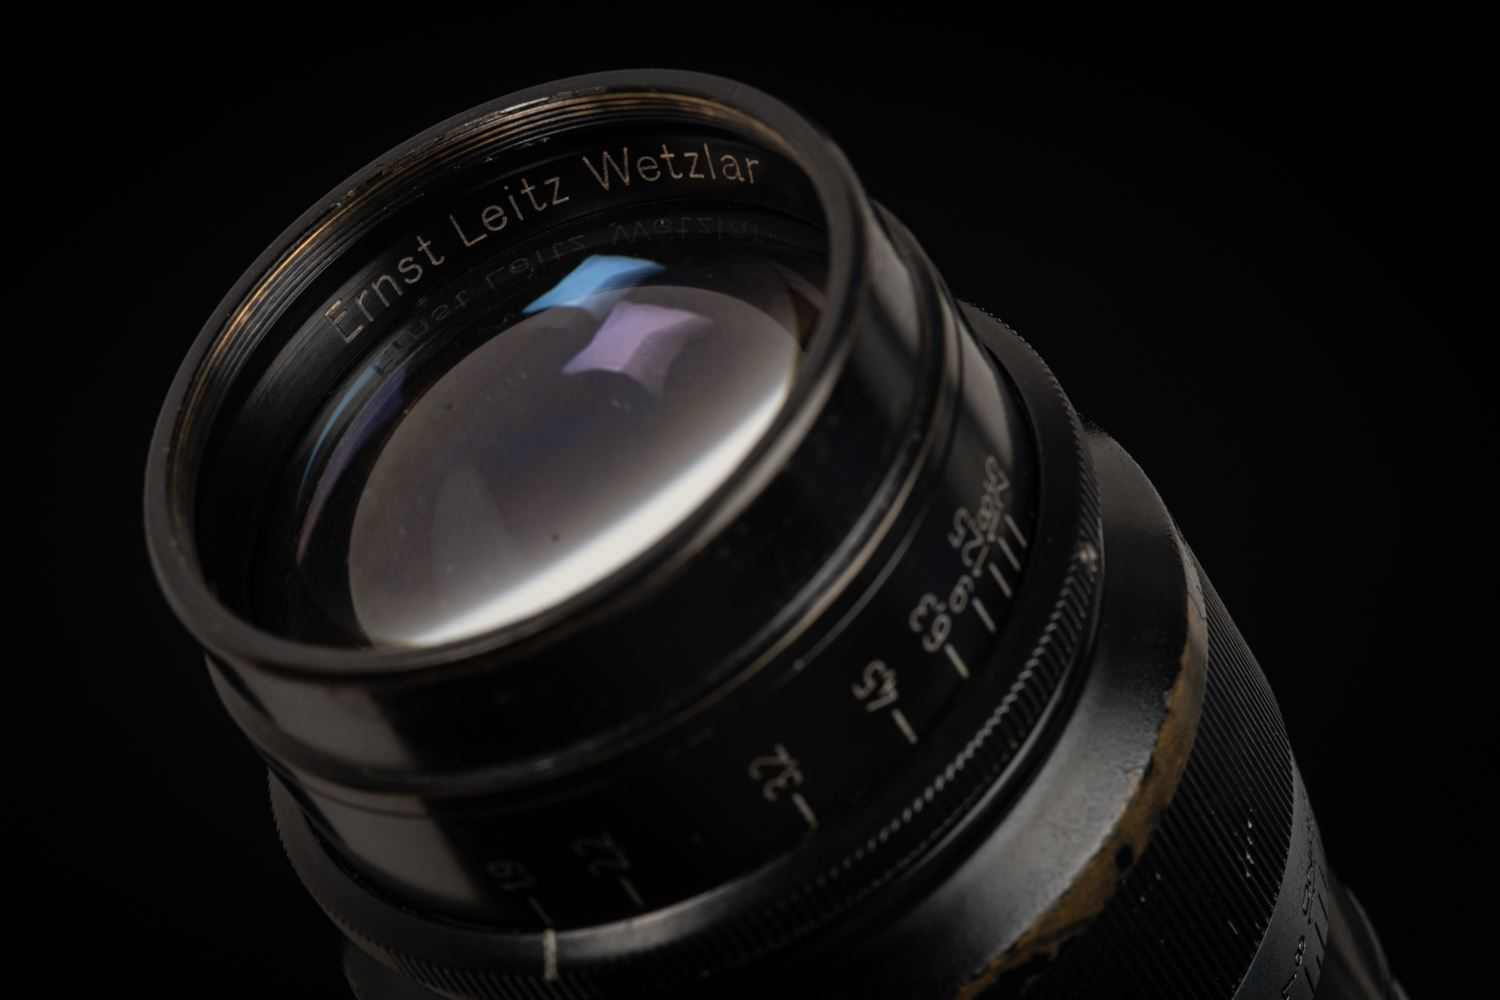 Picture of Leica Hektor 73mm f/1.9 Black/Chrome